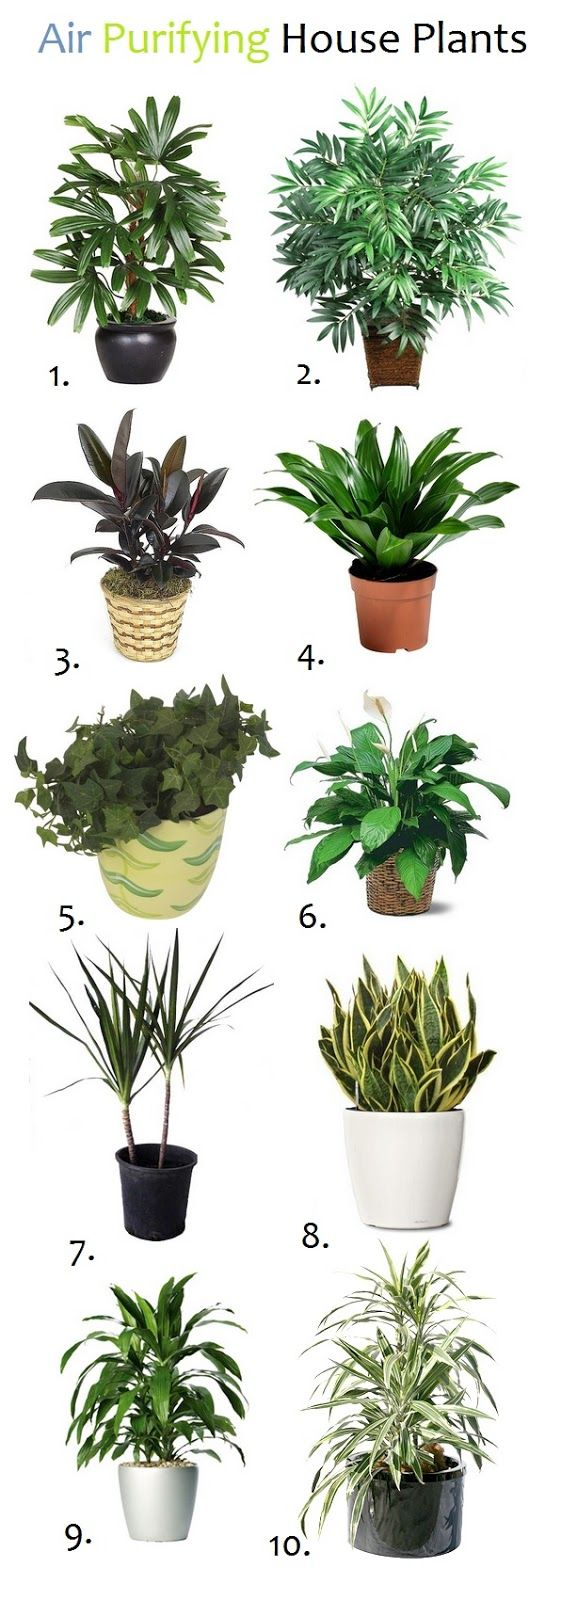 Life Hack: 10 Air Purifying House Plants As a side note, one of the plants NASA studied is an excellent humidifier. One six foot Areca Palm will put a quart of water into the air in a day.